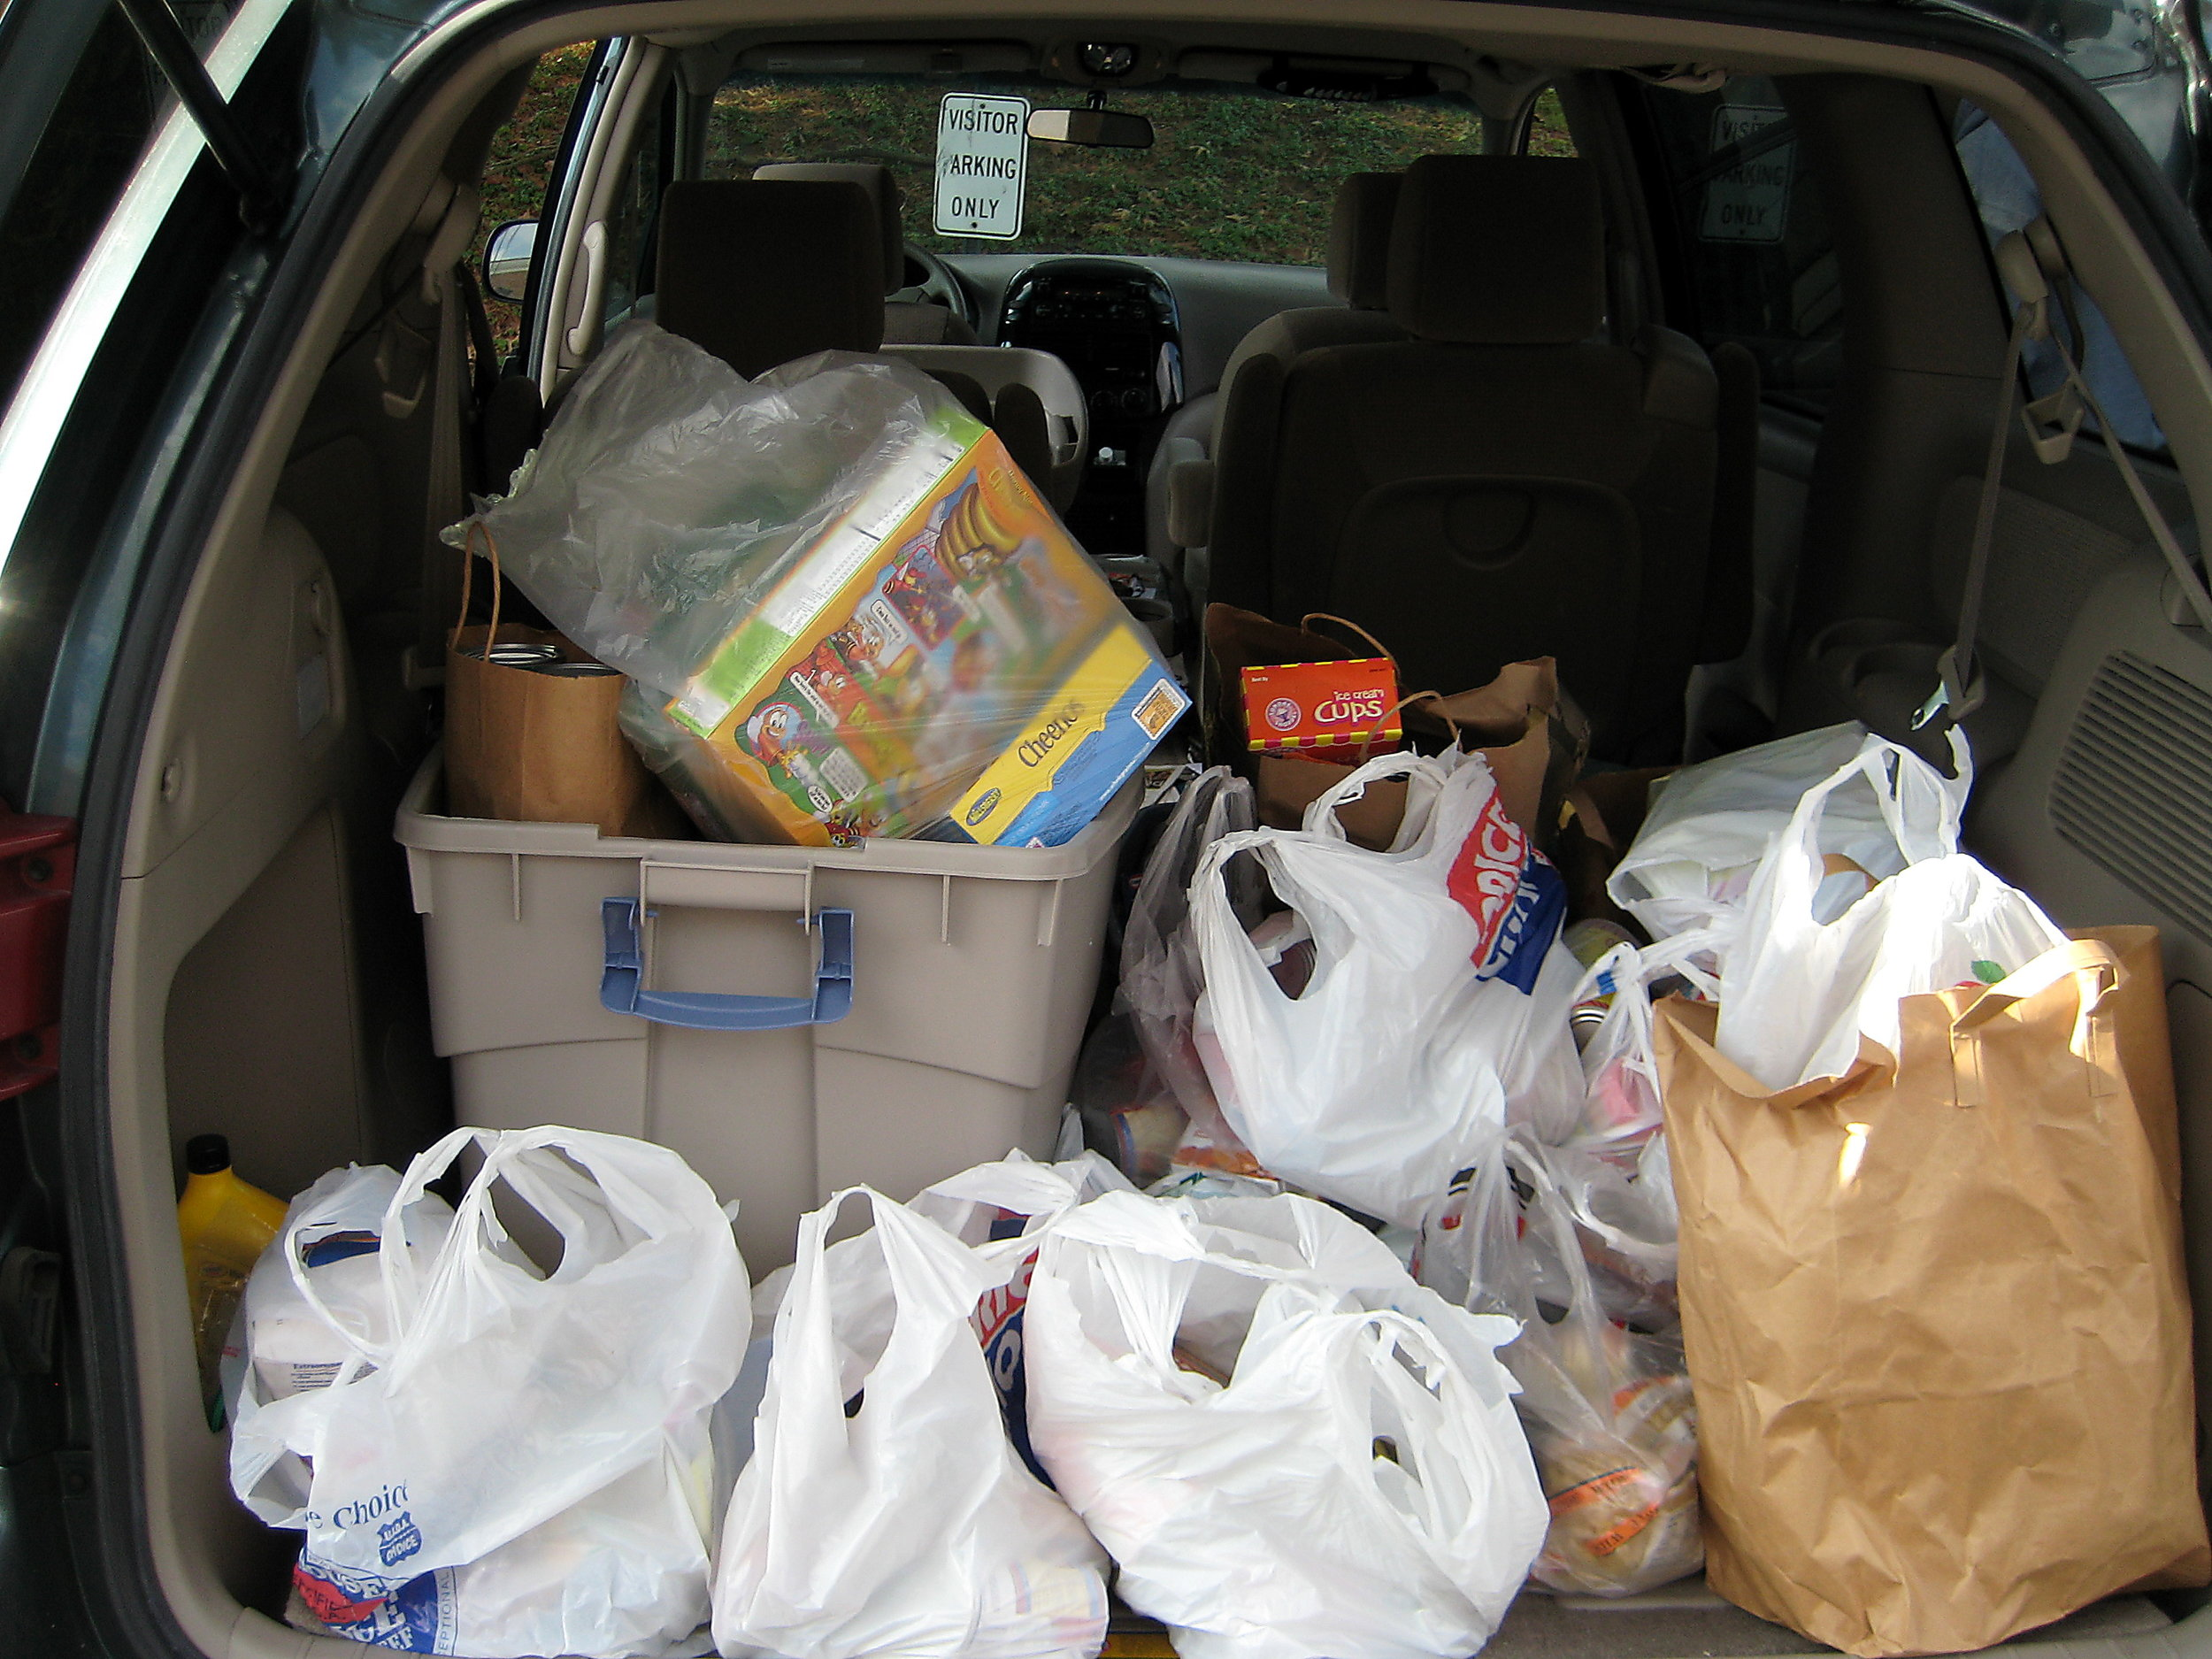 Food Pantry Mission.JPG